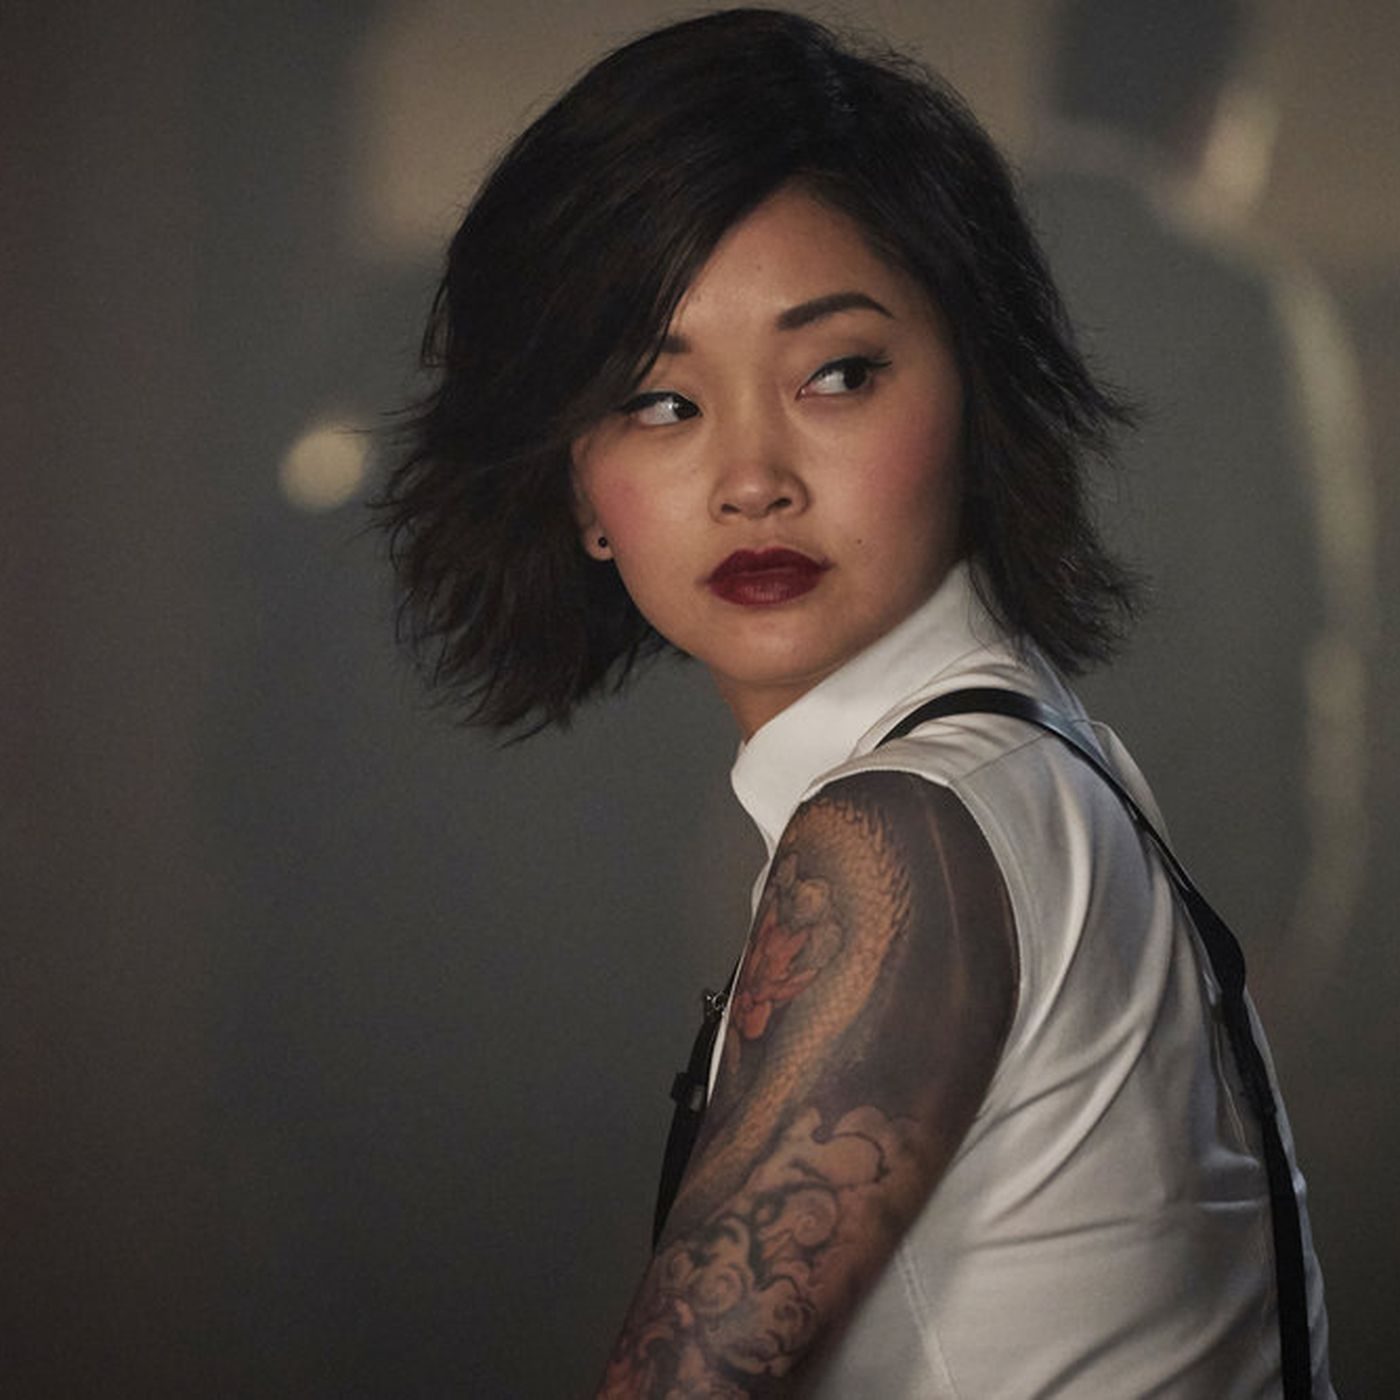 Syfy's Deadly Class: the cast and crew explain their angry